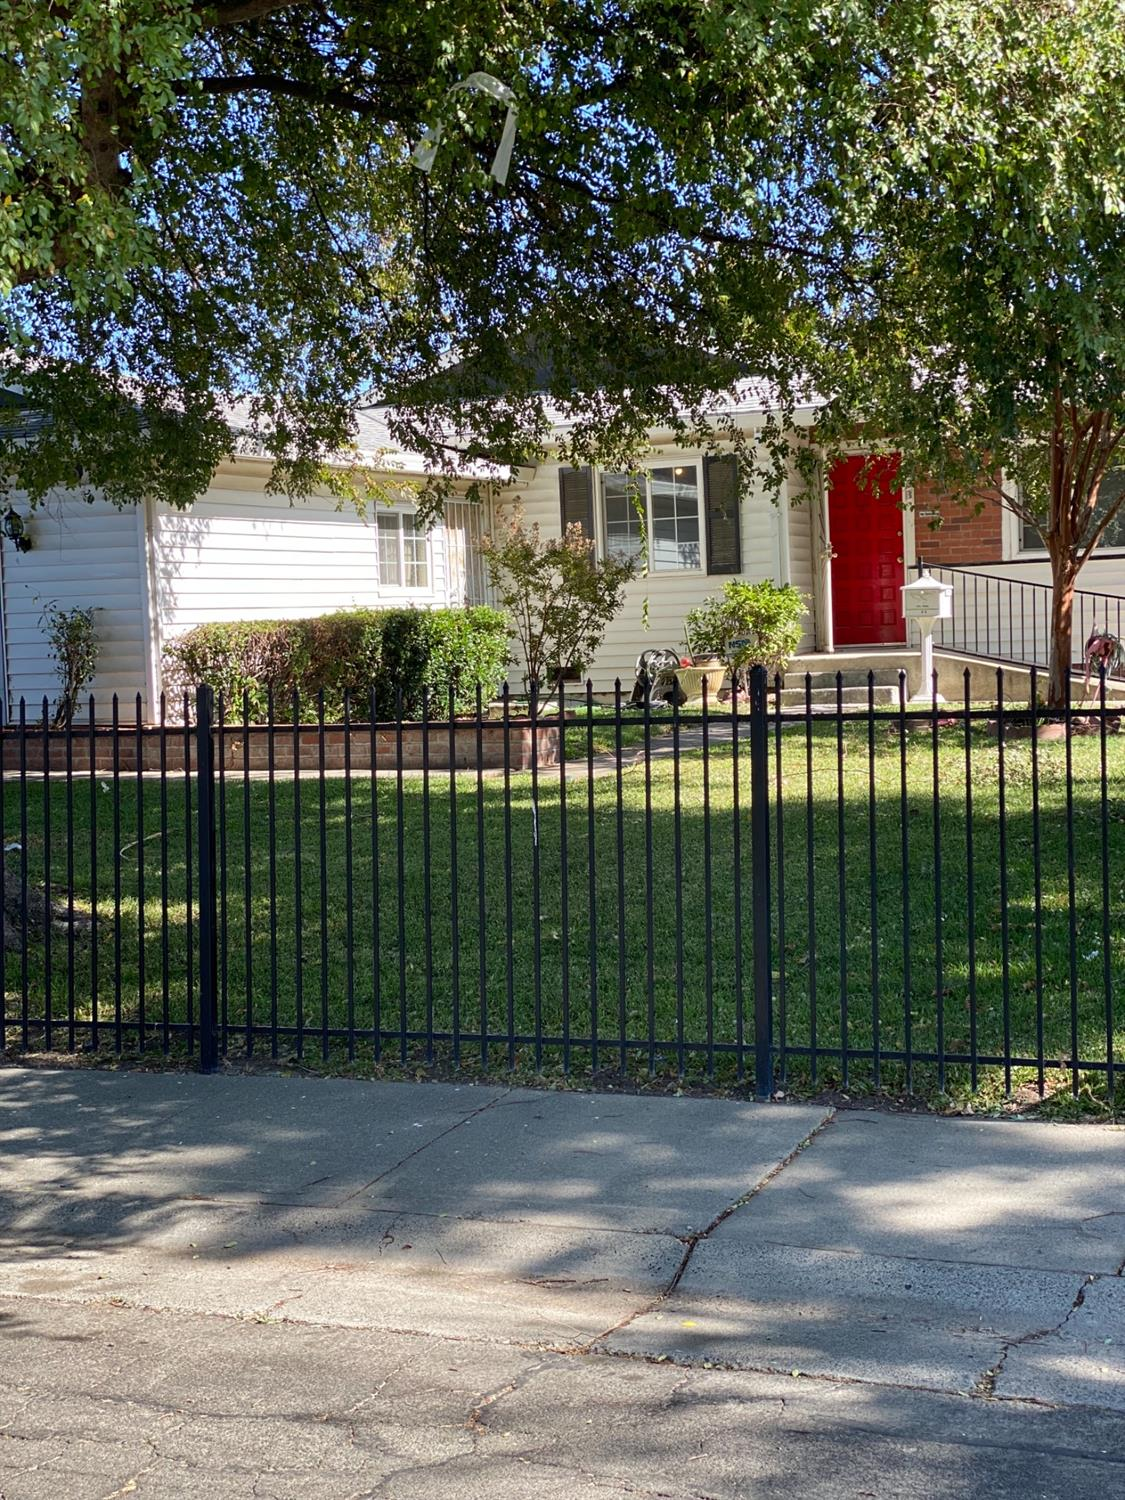 Great curb appeal in this 3 bedroom, 2 bathroom, 1300 square foot home! As soon as you arrive, you w